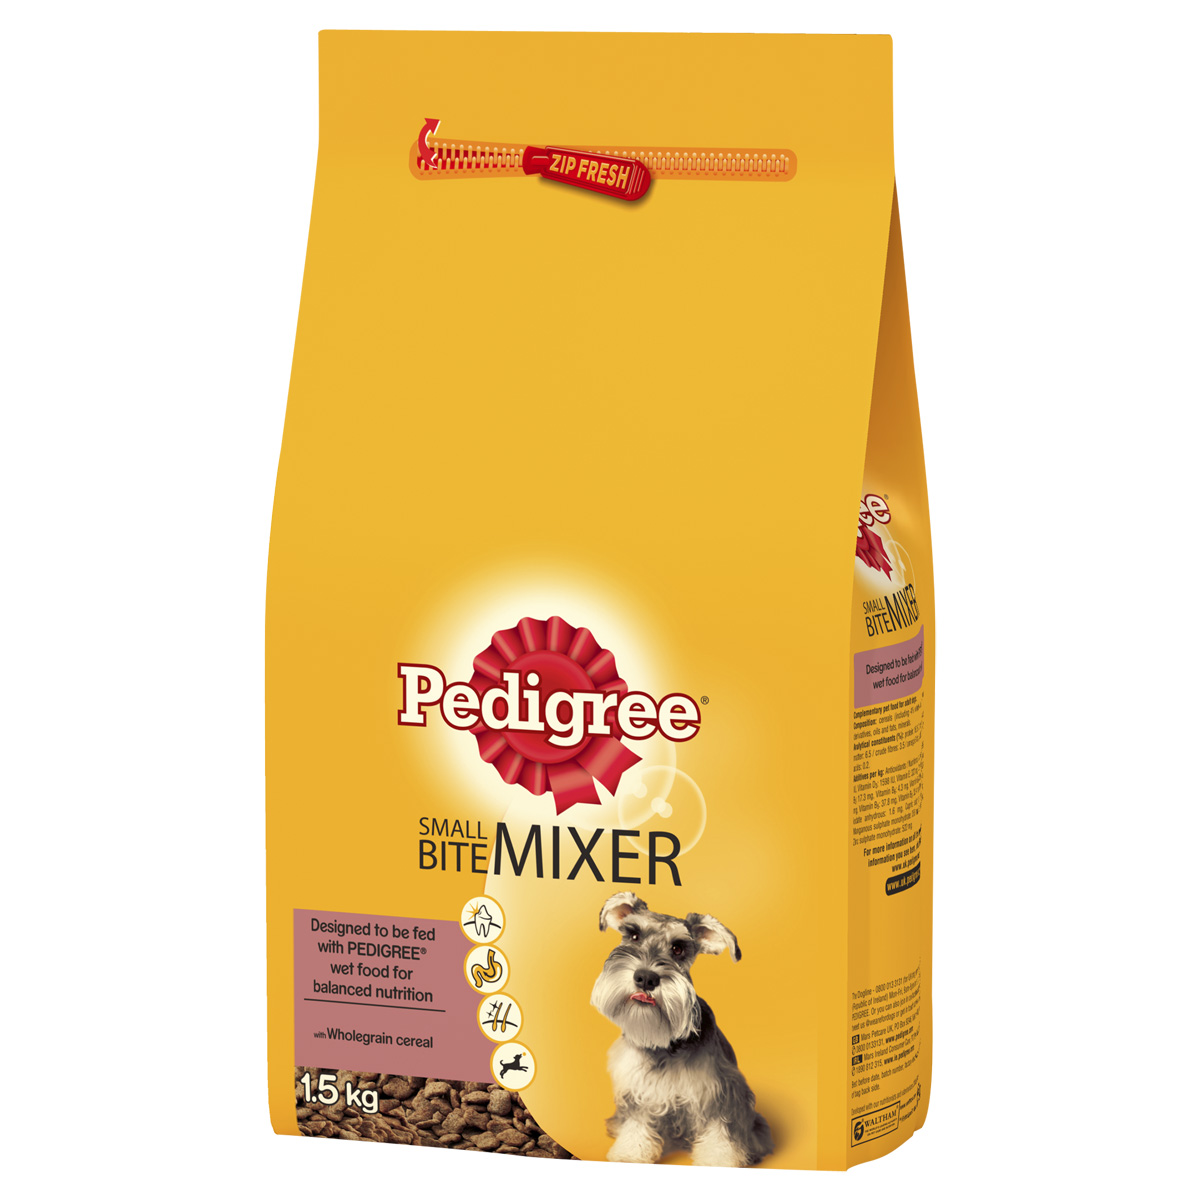 Pedigree Small Dog Food Ingredients